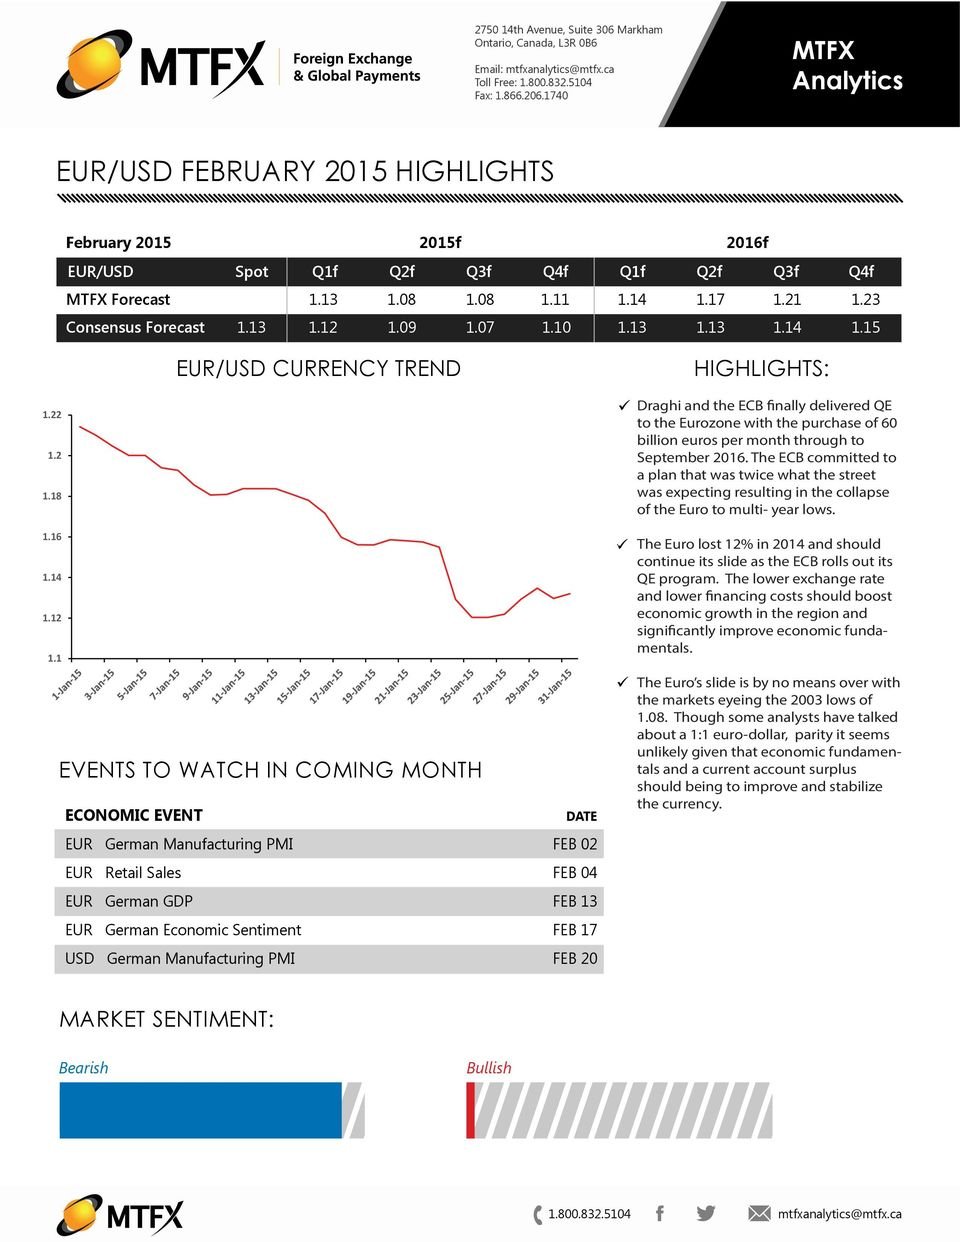 09 1.07 1.10 1.13 1.13 1.14 1.15 EUR/USD CURRENCY TREND HIGHLIGHTS: 1.22 1.2 1.18 1.1 1.14 1.12 1.